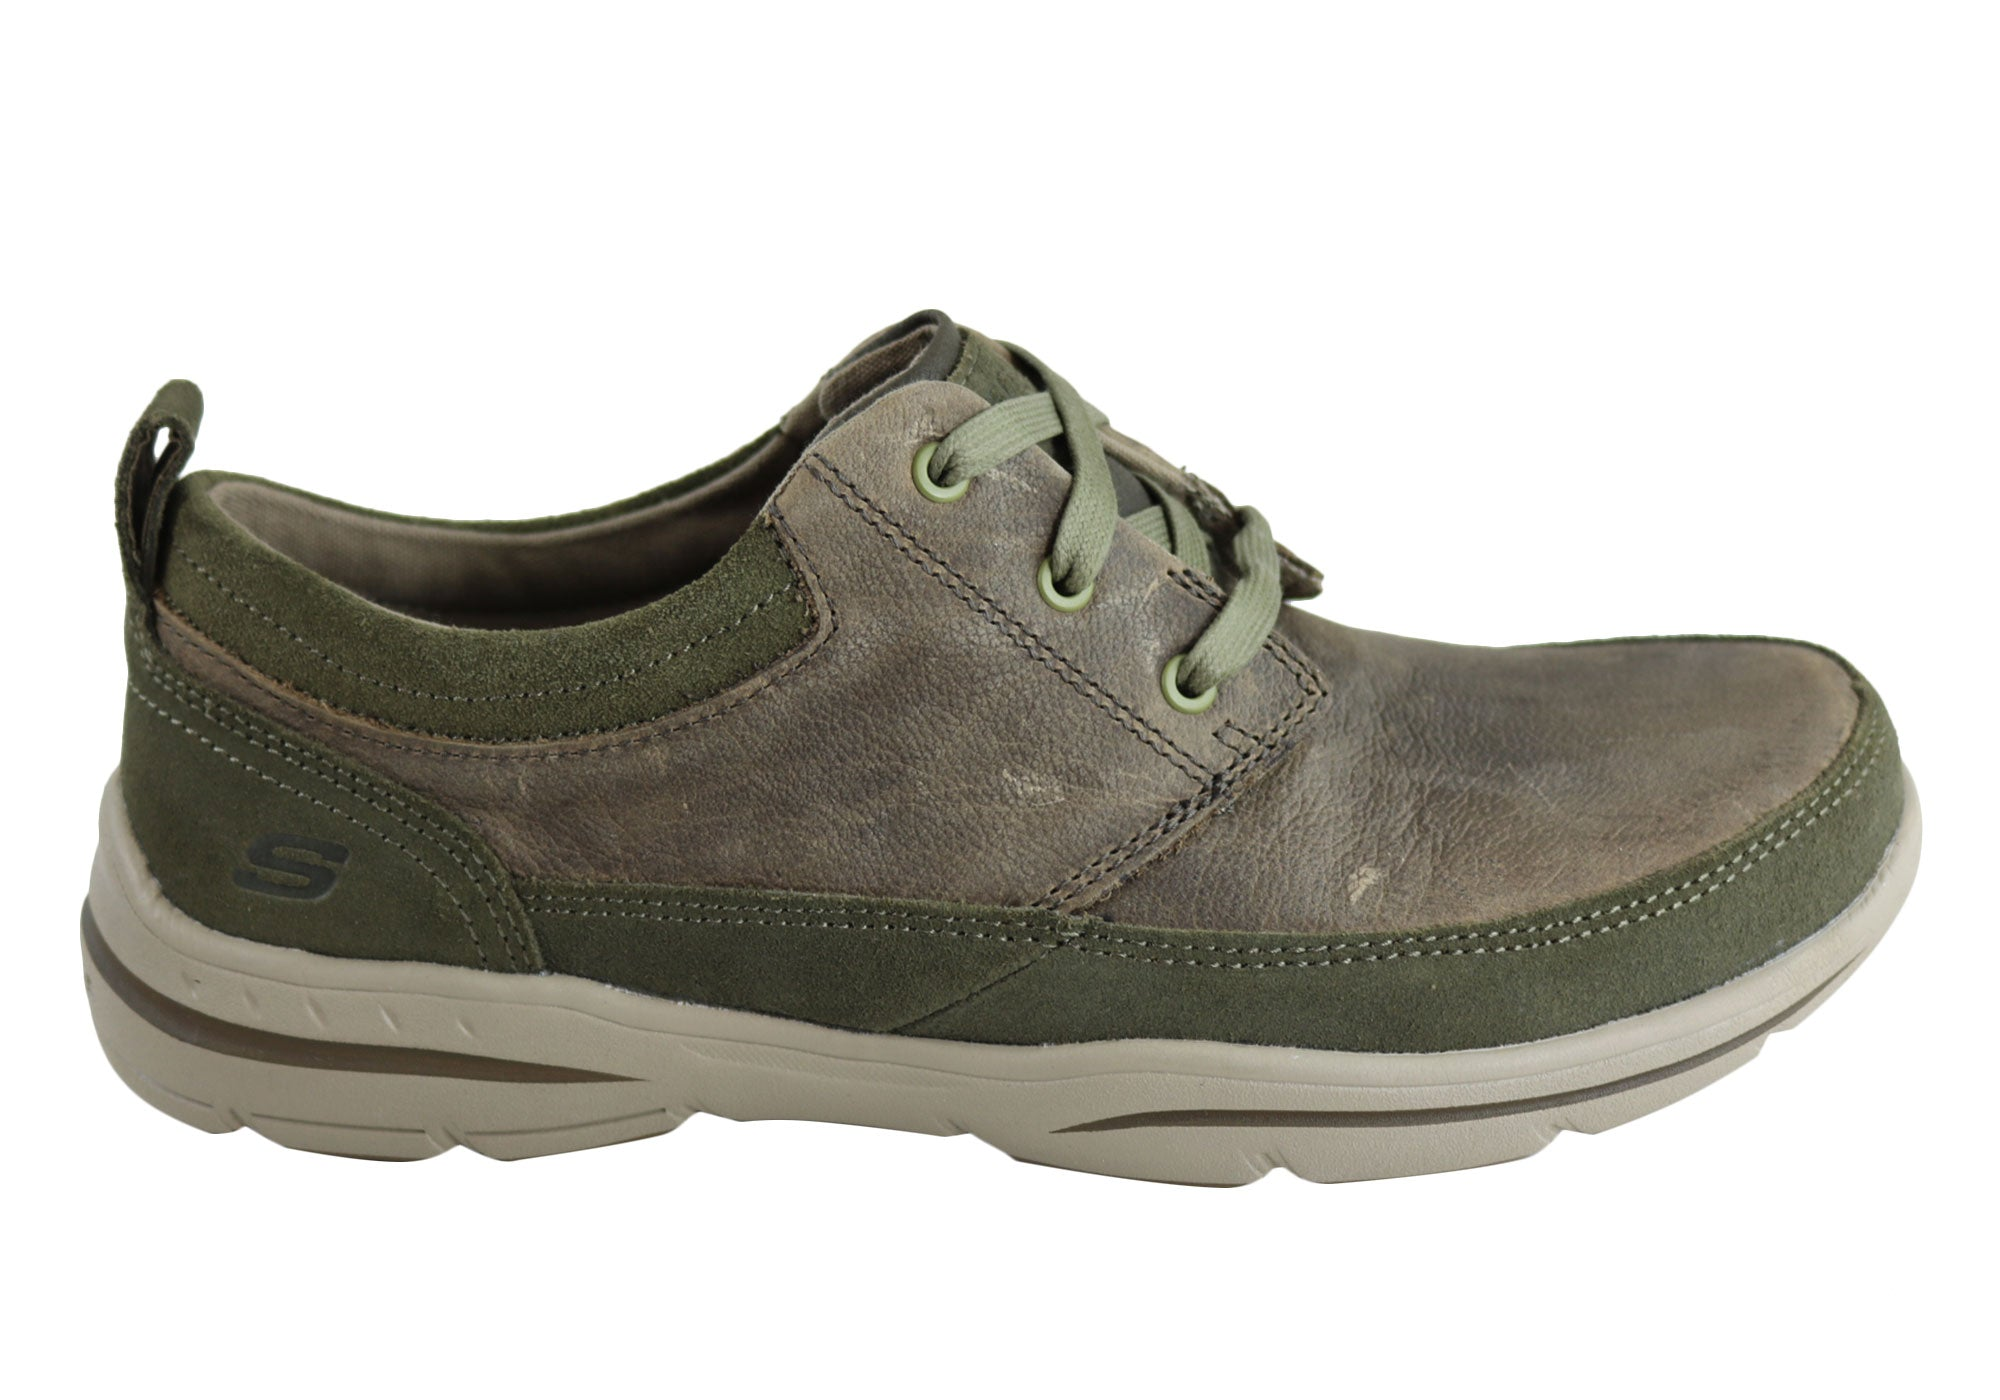 94aedc8749e1 Skechers Harper Olney Mens Relaxed Fit Casual Leather Lace Up Shoes ...